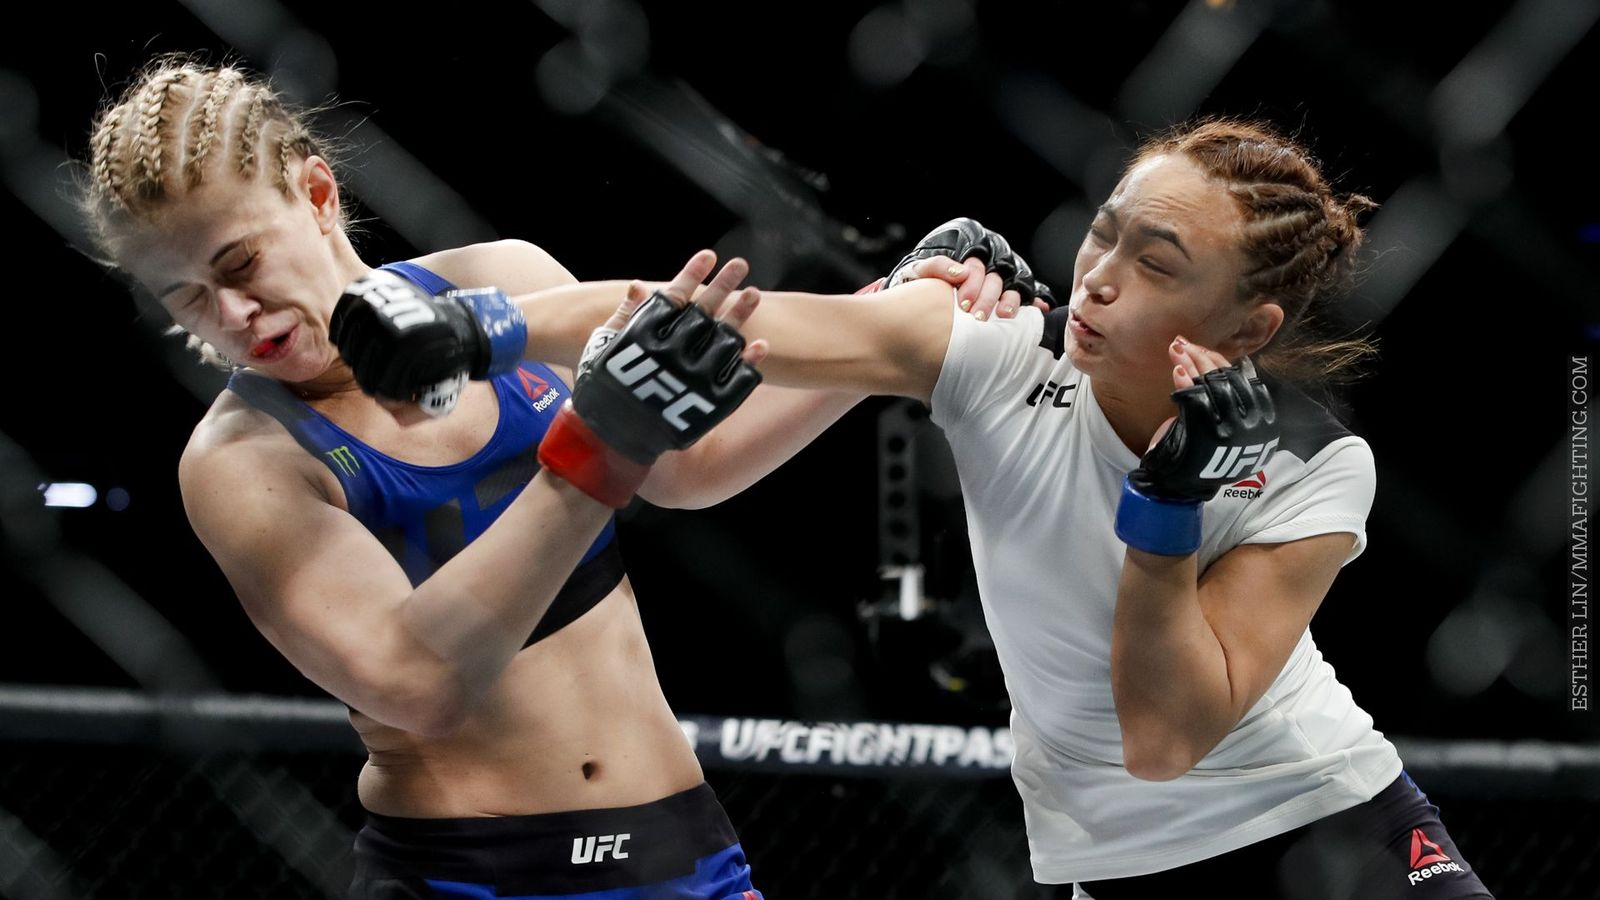 Michelle Waterson punching Paige VanZant in the face during their match at UFC On Fox